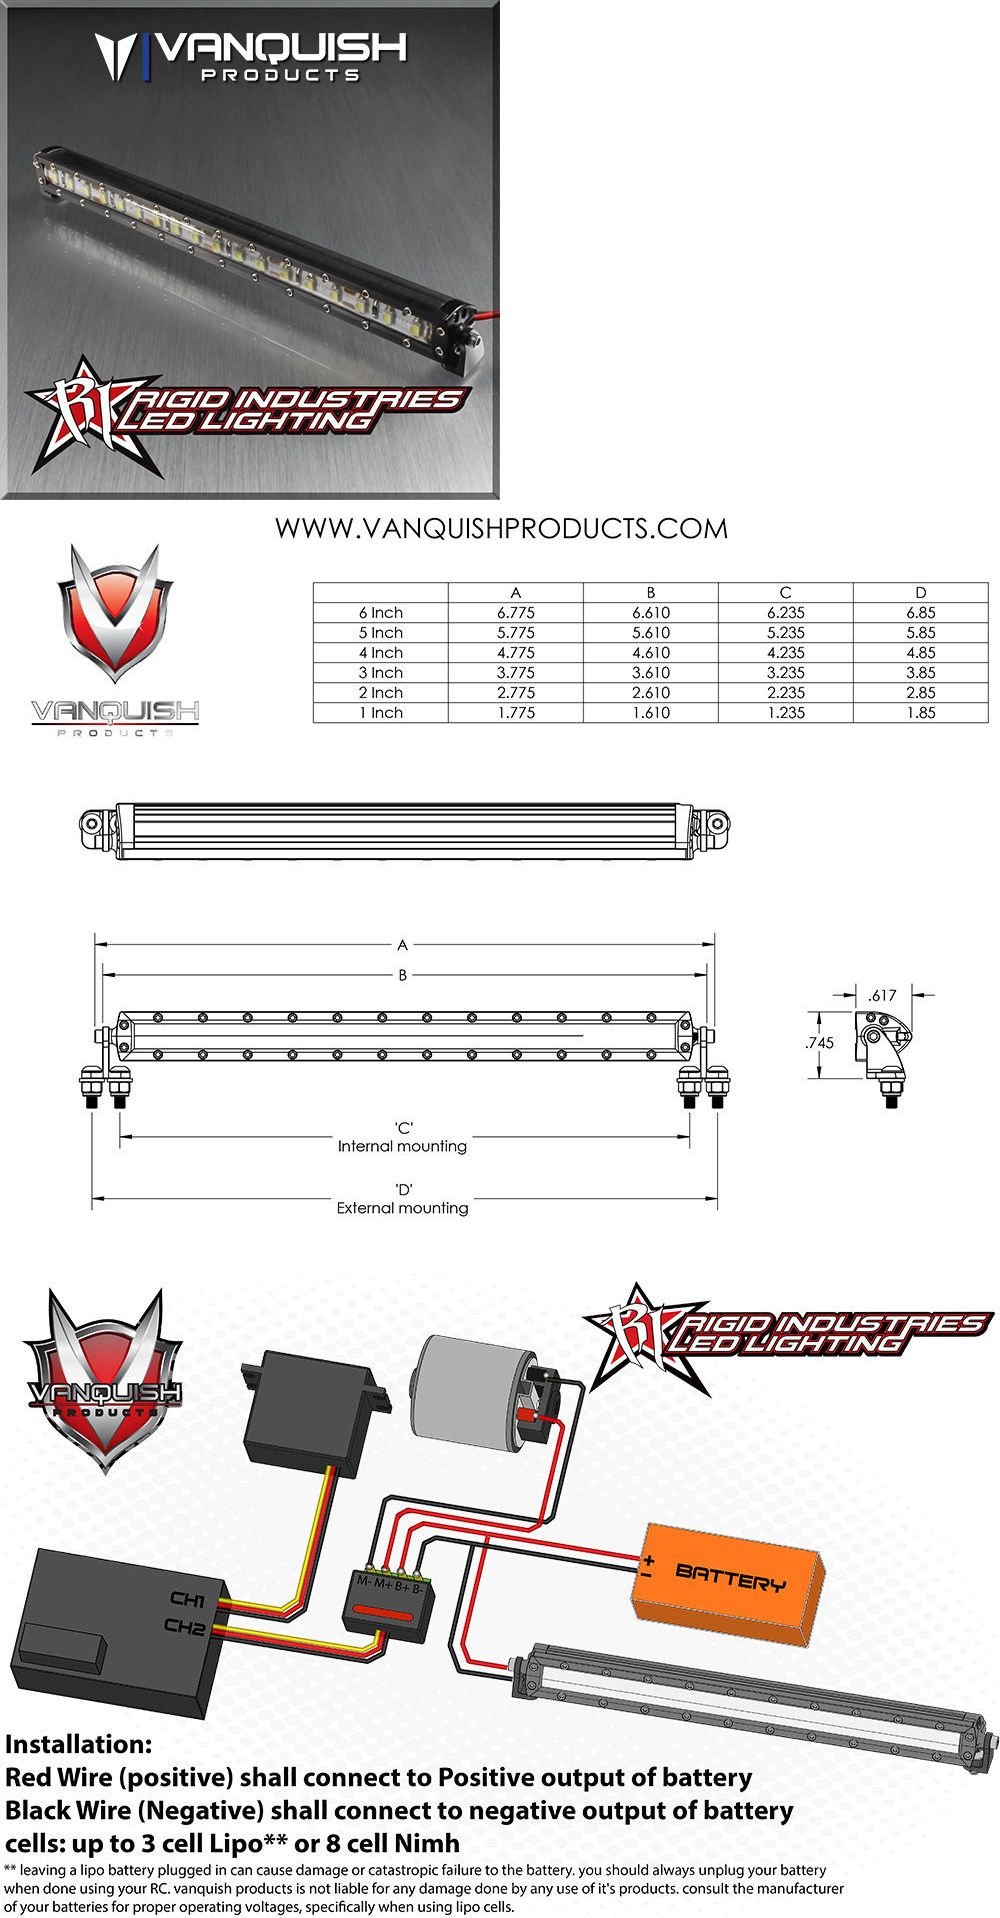 hight resolution of lighting and lamps 182177 vanquish rigid industries 6in led light bar black 1 10 scale axial hpi vps06751 buy it now only 58 99 on ebay lighting